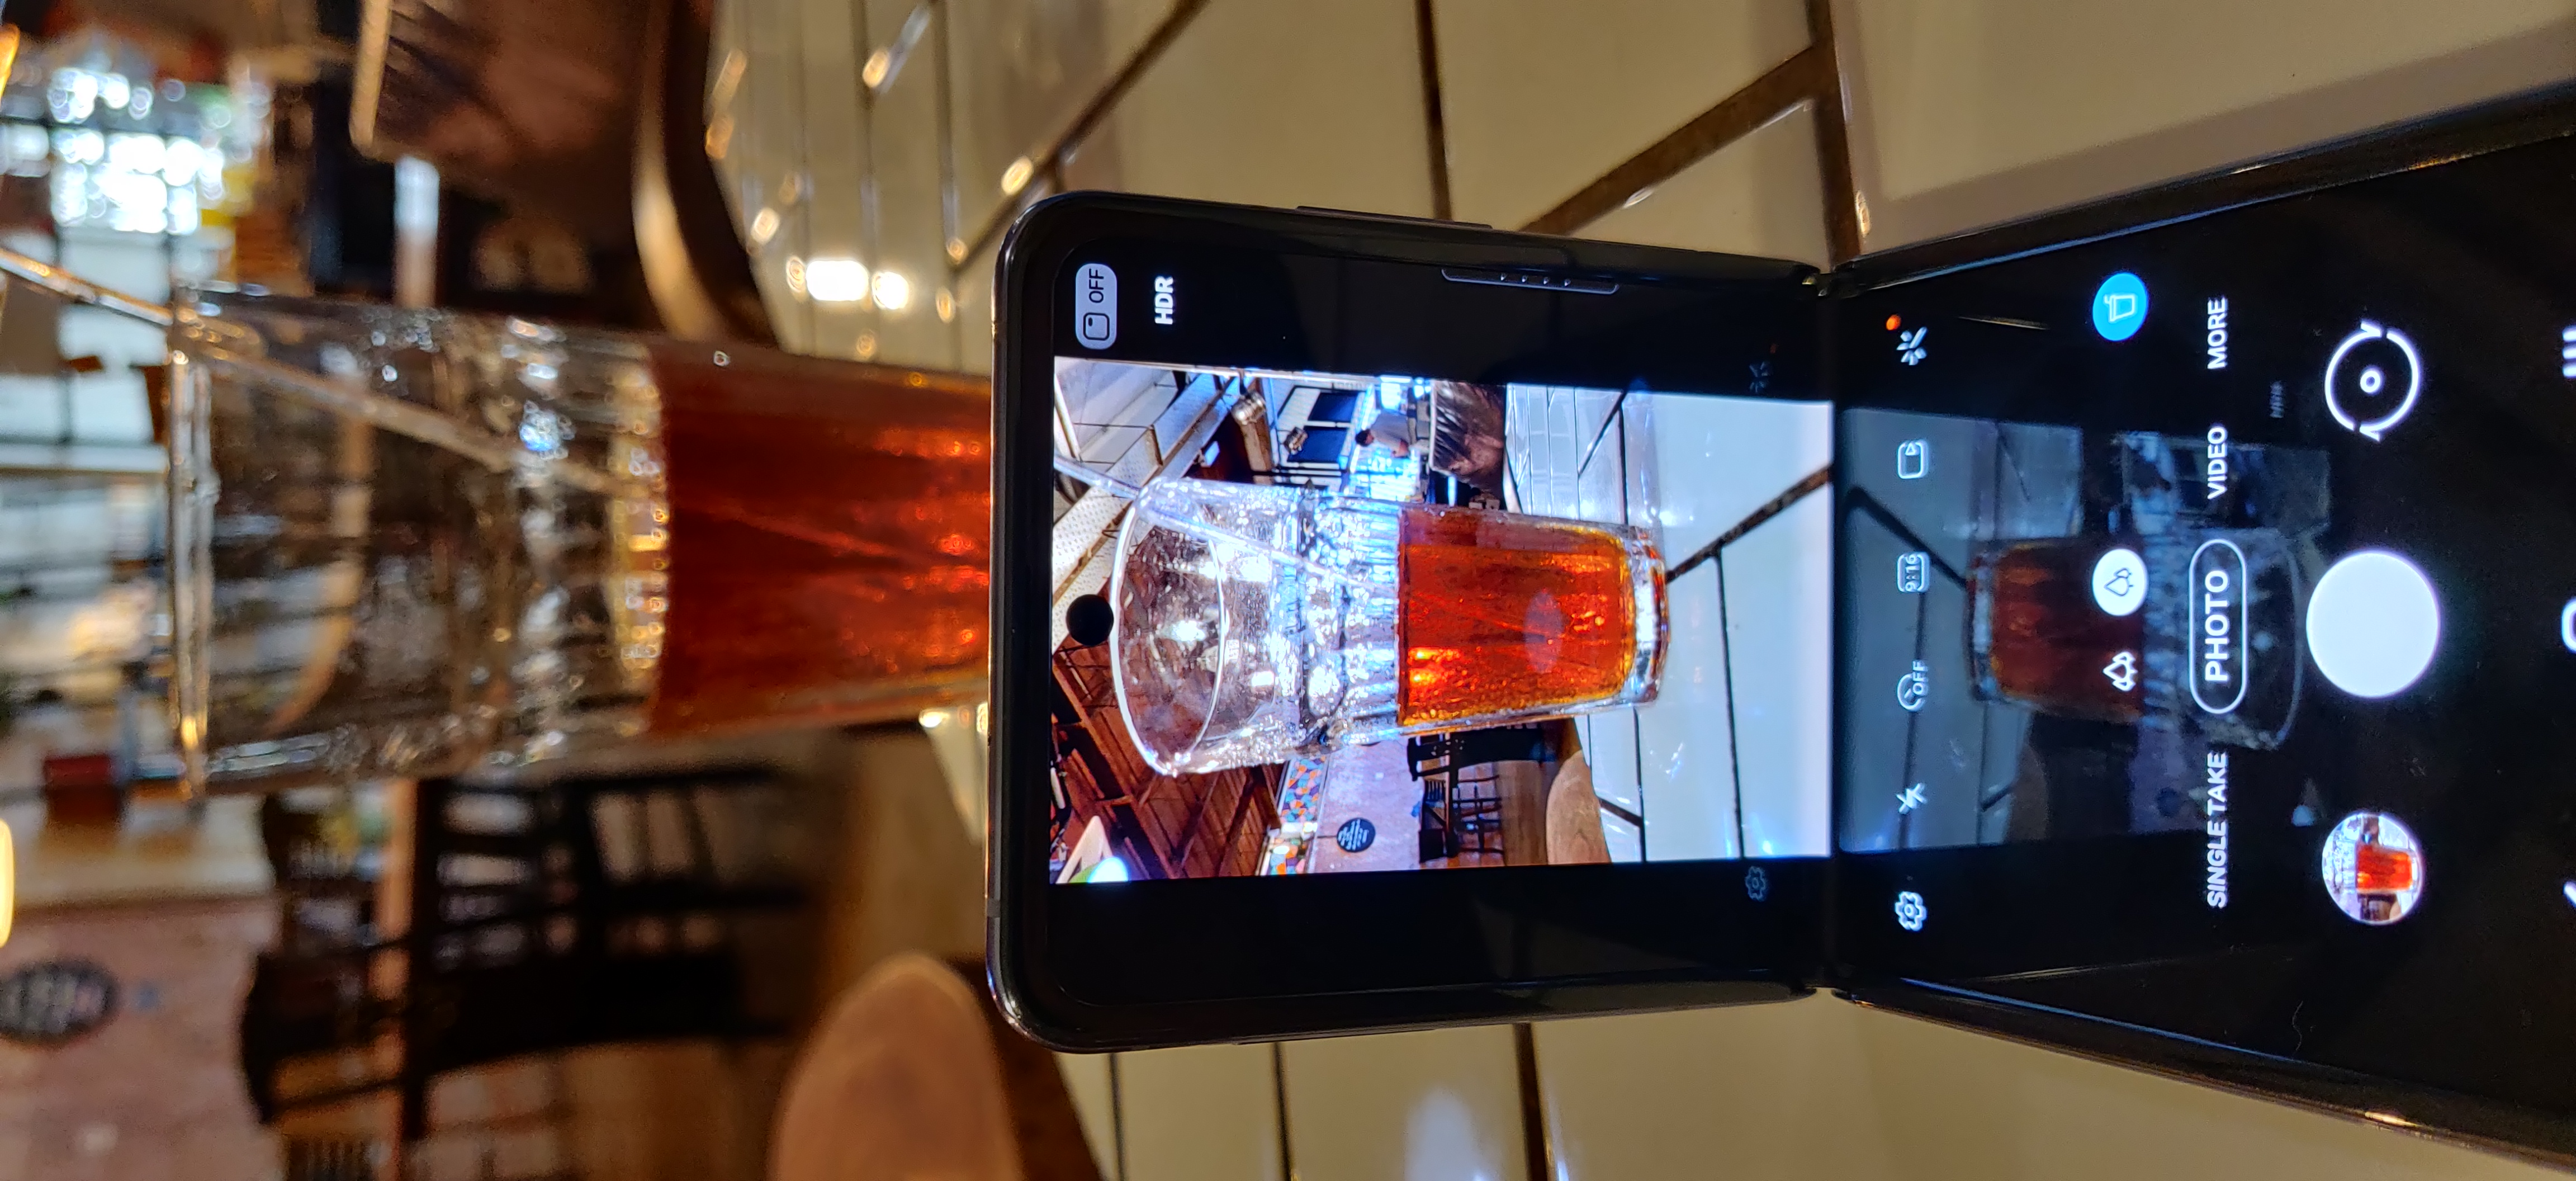 Review: Samsung's second attempt at 'flip' improves